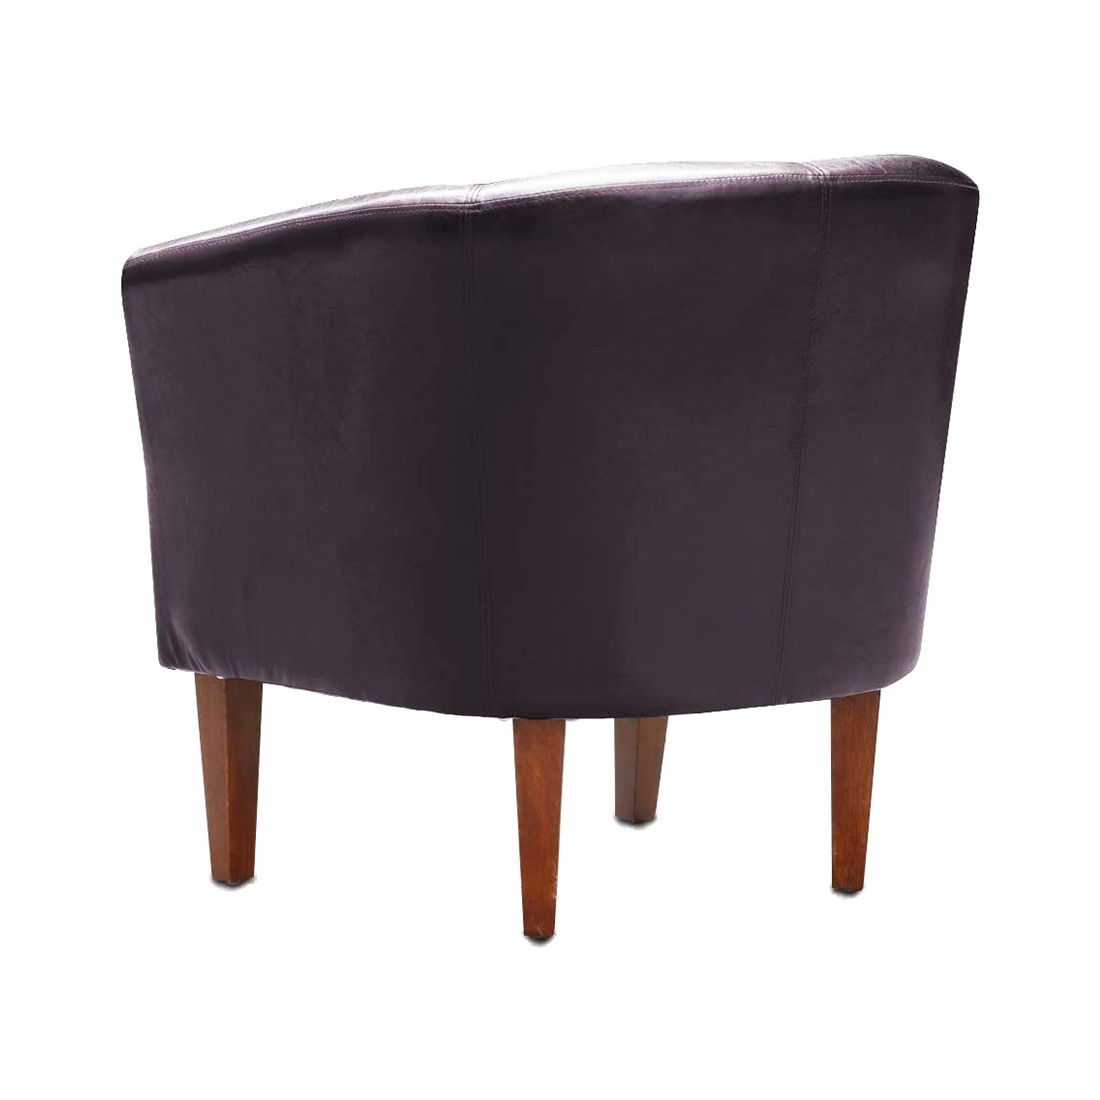 Leather Tub Chair Armchair For Dining Living Room Office Reception Z9K5 EBay